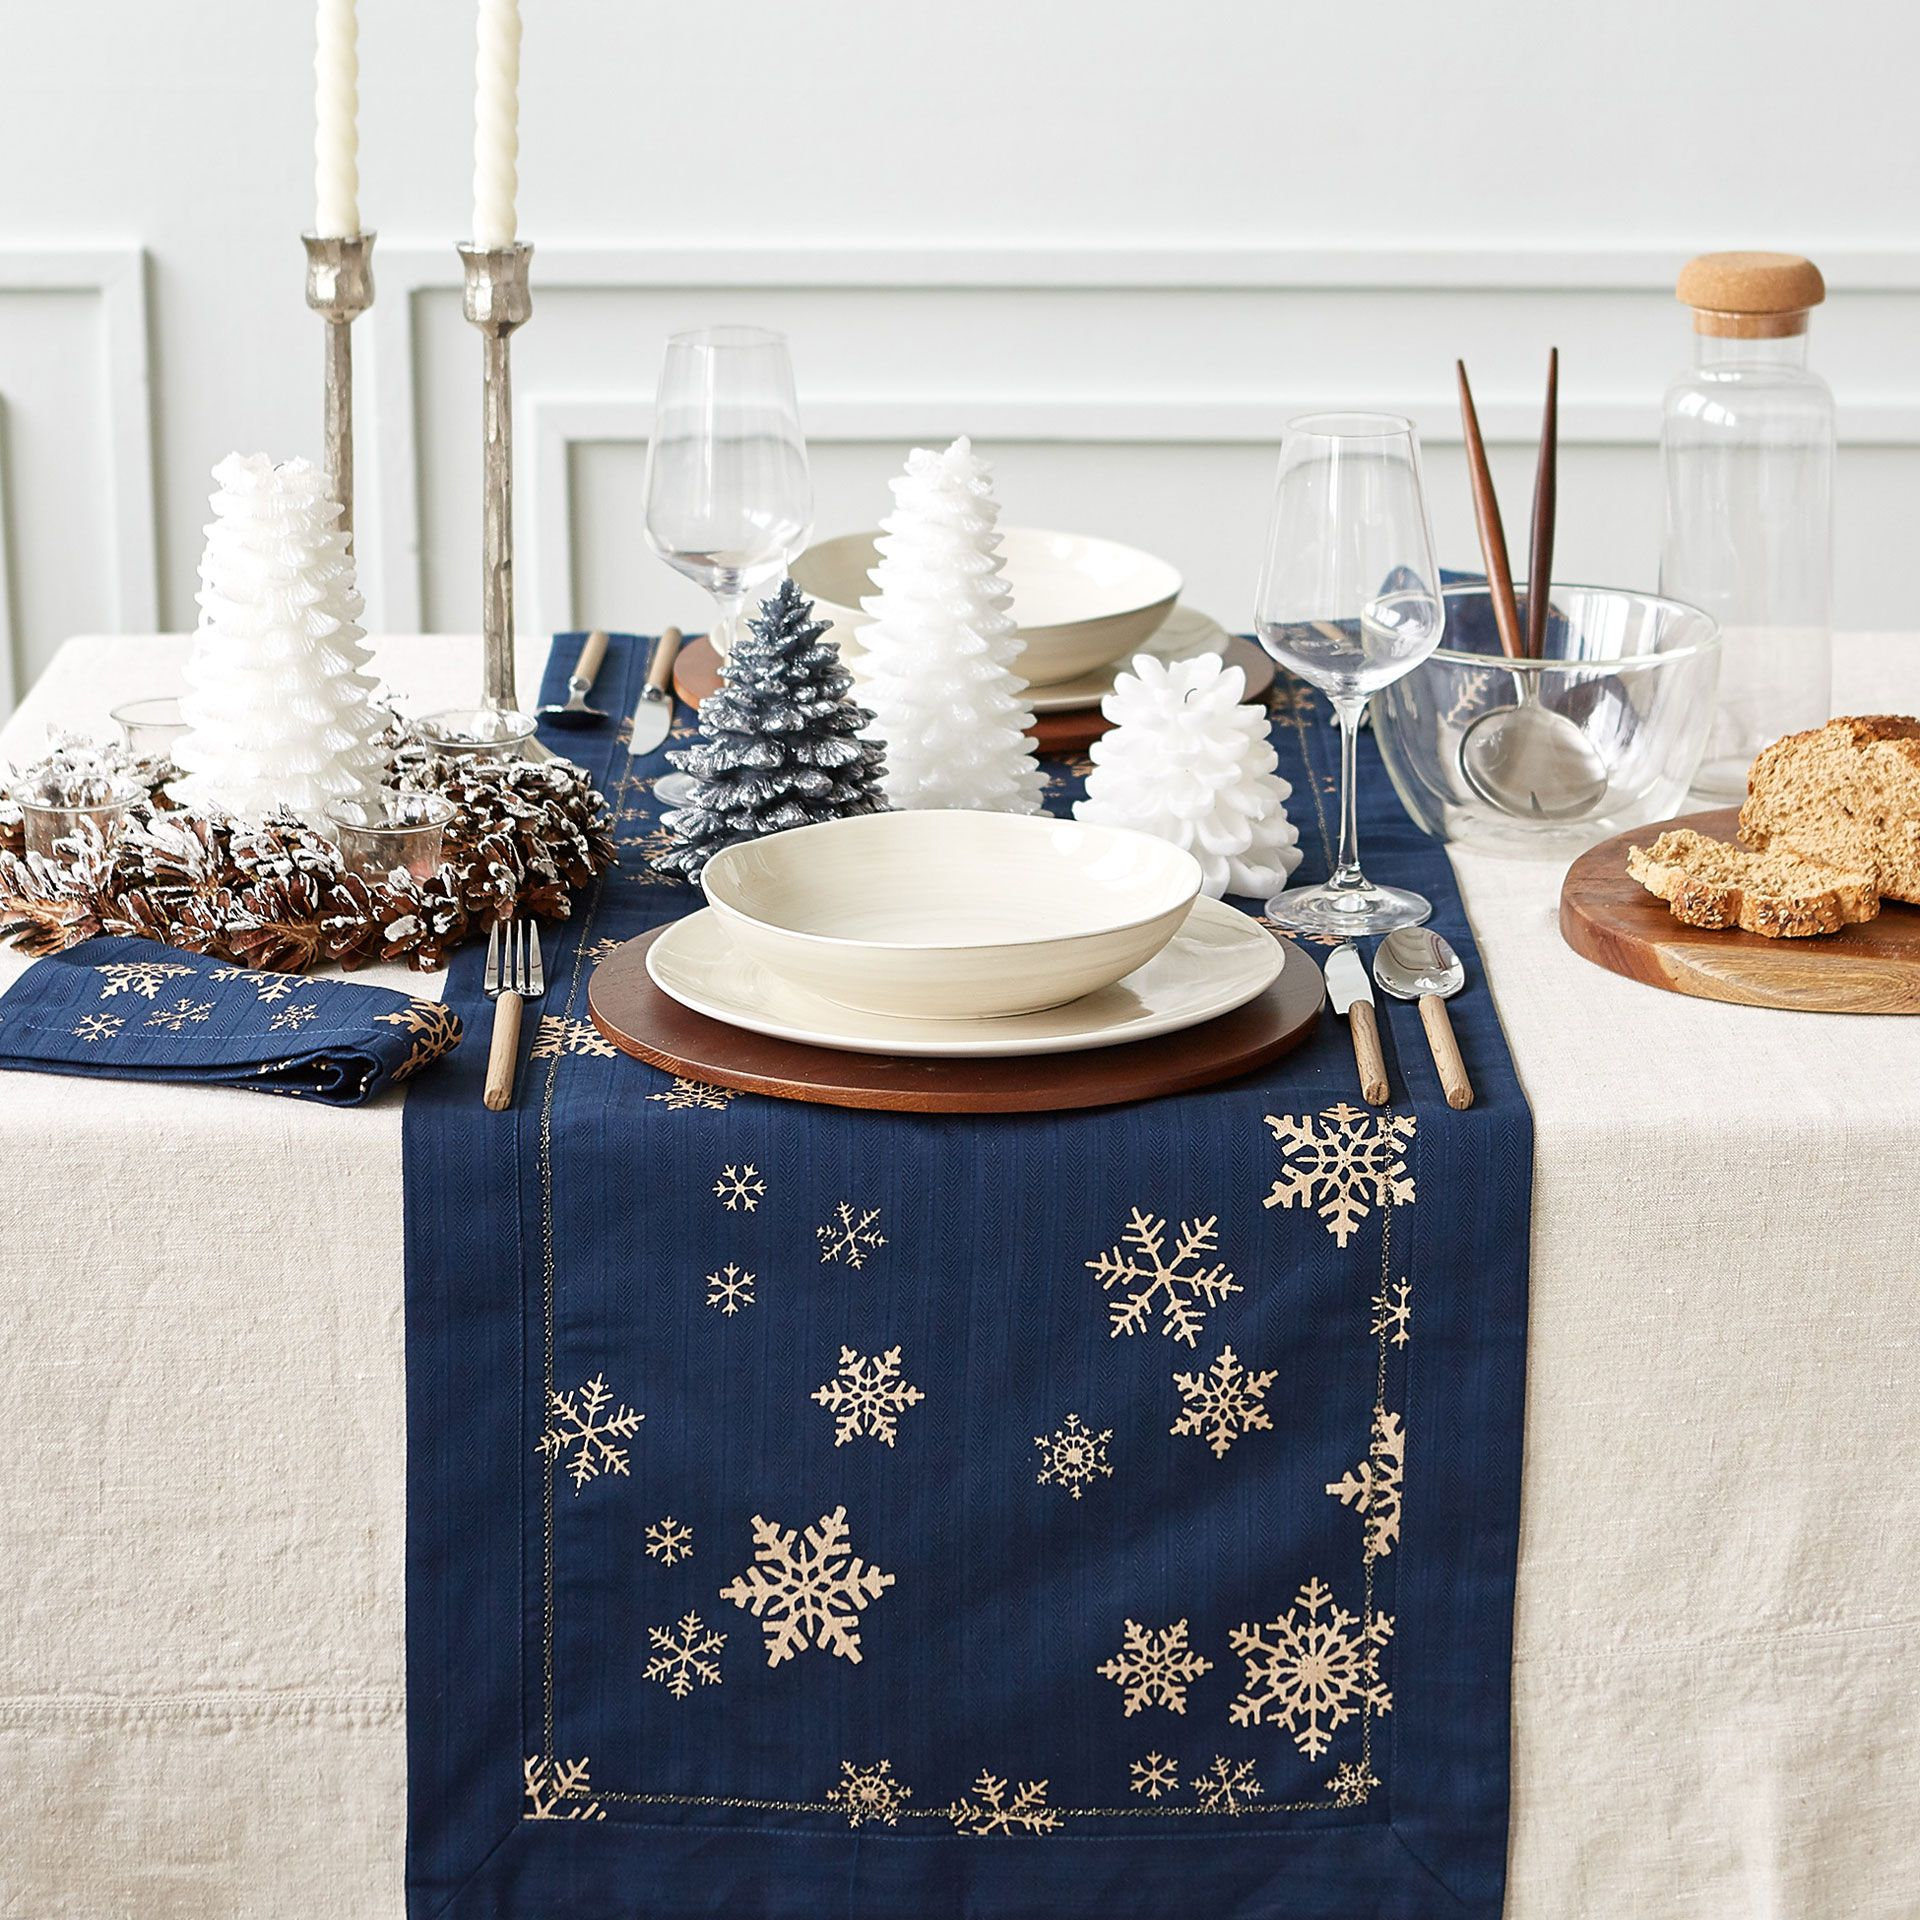 Image 1 Of The Product Snowflake Print Table Runner Copper Christmas Decor Copper Christmas Table Printed Table Runner